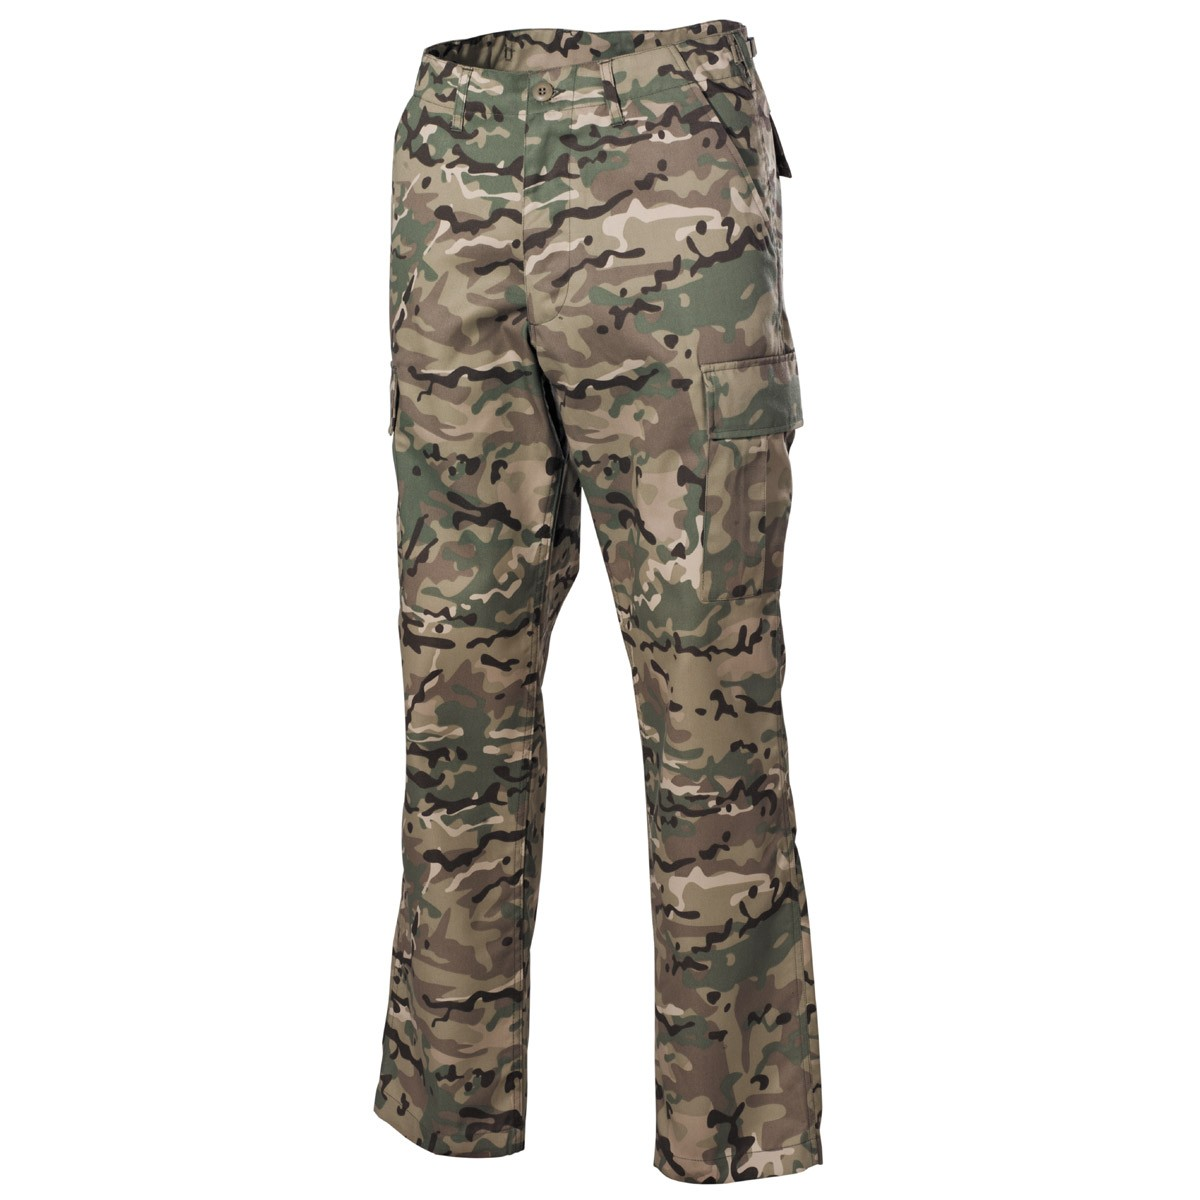 Multicam Camo Pattern BDU Field Pants